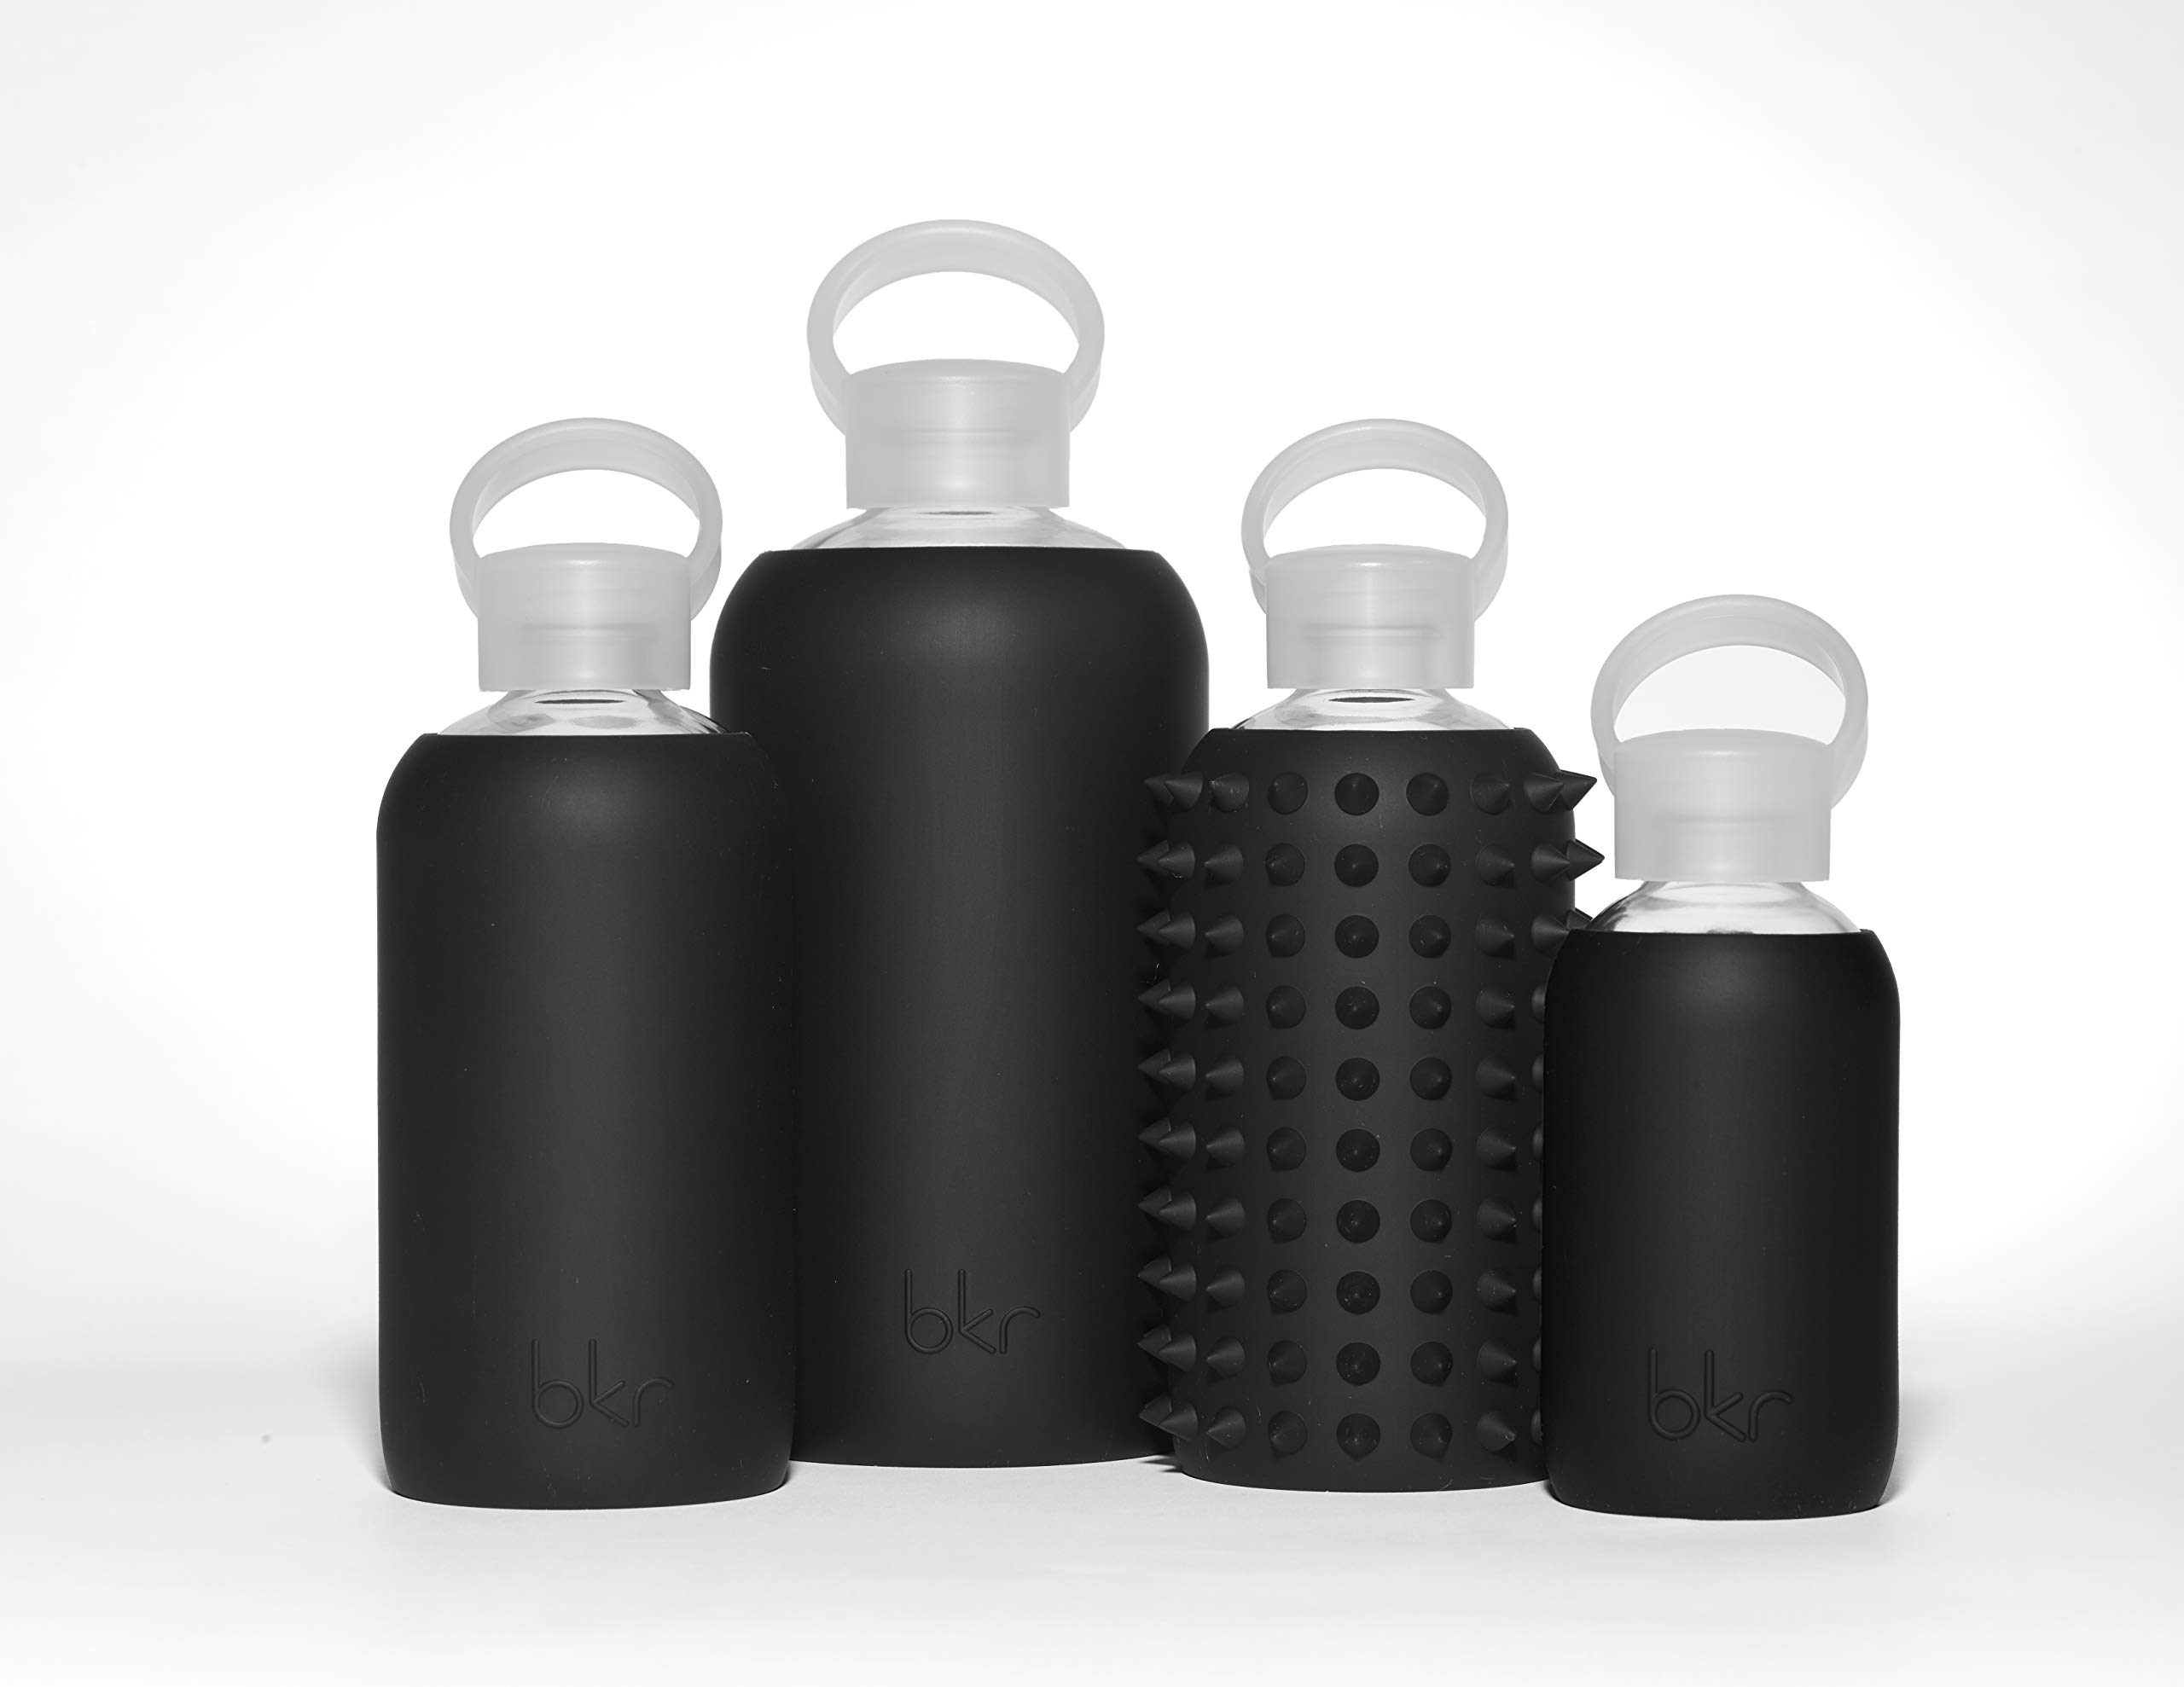 bkr Jet Glass Water Bottle with Smooth Silicone Sleeve for Travel, Narrow Mouth, BPA-Free & Dishwasher Safe, Opaque Black, 8 oz / 250 mL by bkr (Image #7)